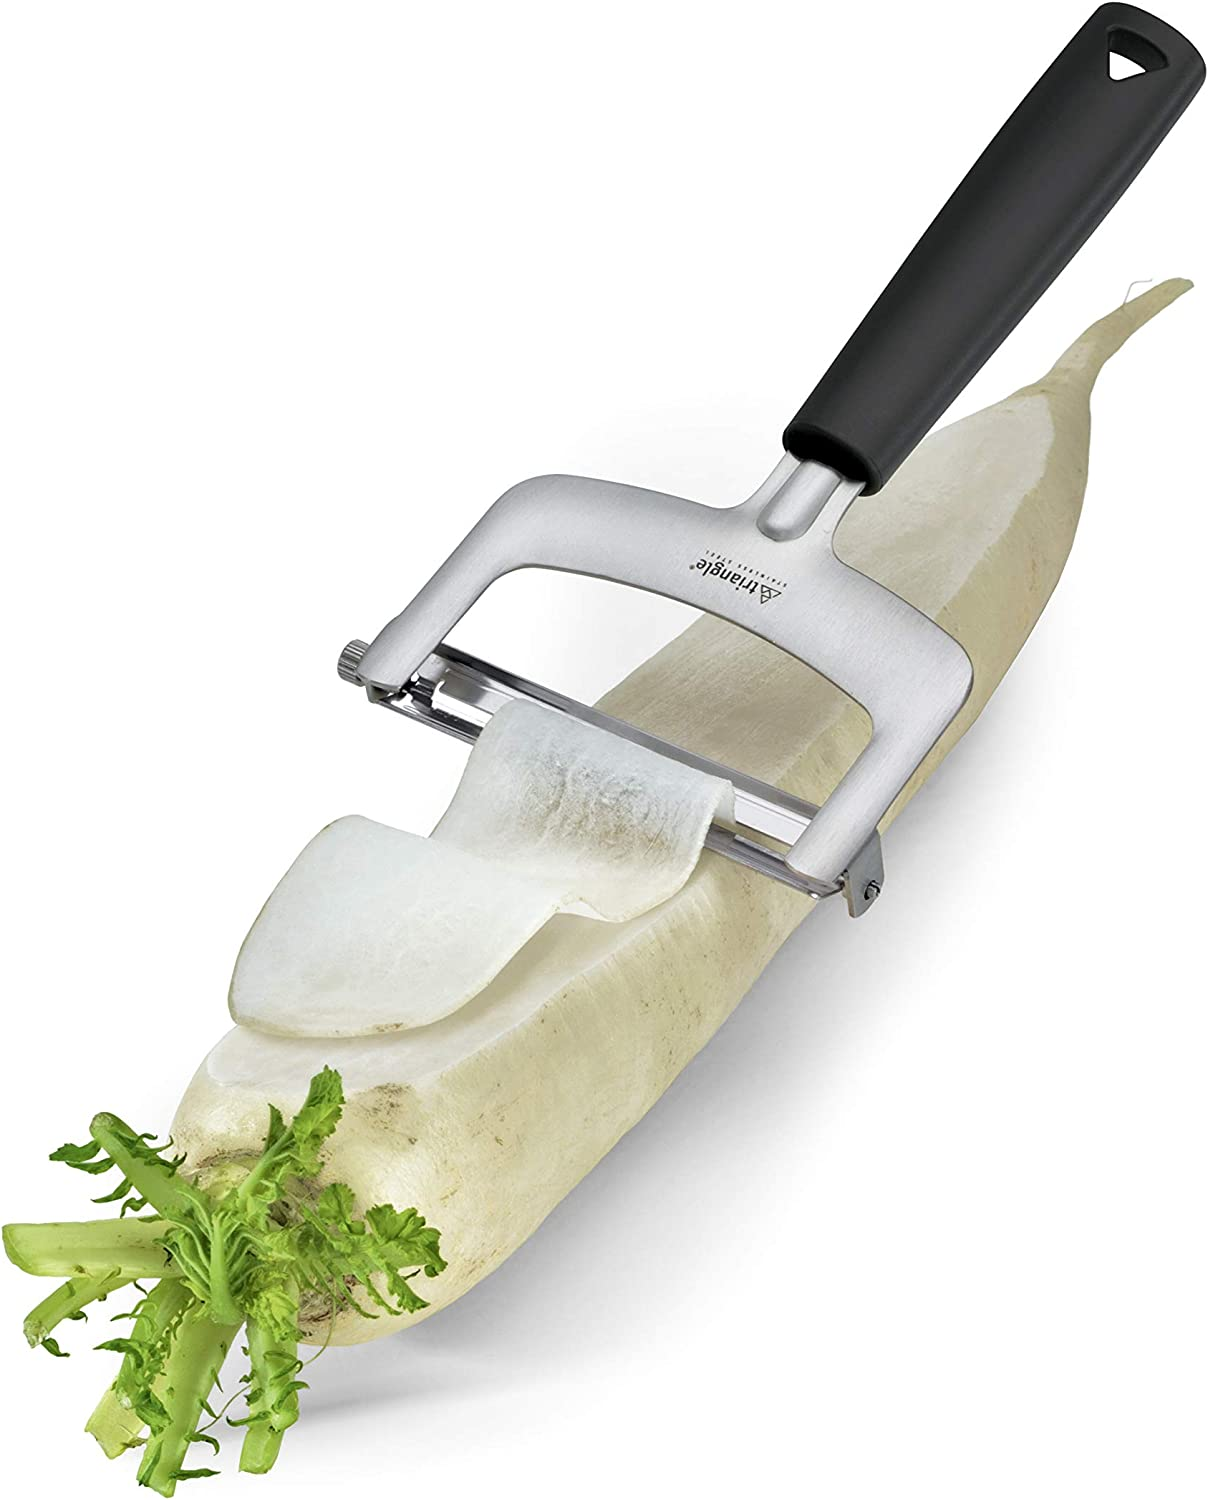 Dishwasher Safe Innovative Tool Effortlessly Cuts Vegetables into Uniform Strips 3 Ultra-sharp Tempered Stainless Steel Blades for Thin to Thick Slices Triangle Germany 3-Piece Slicer Set